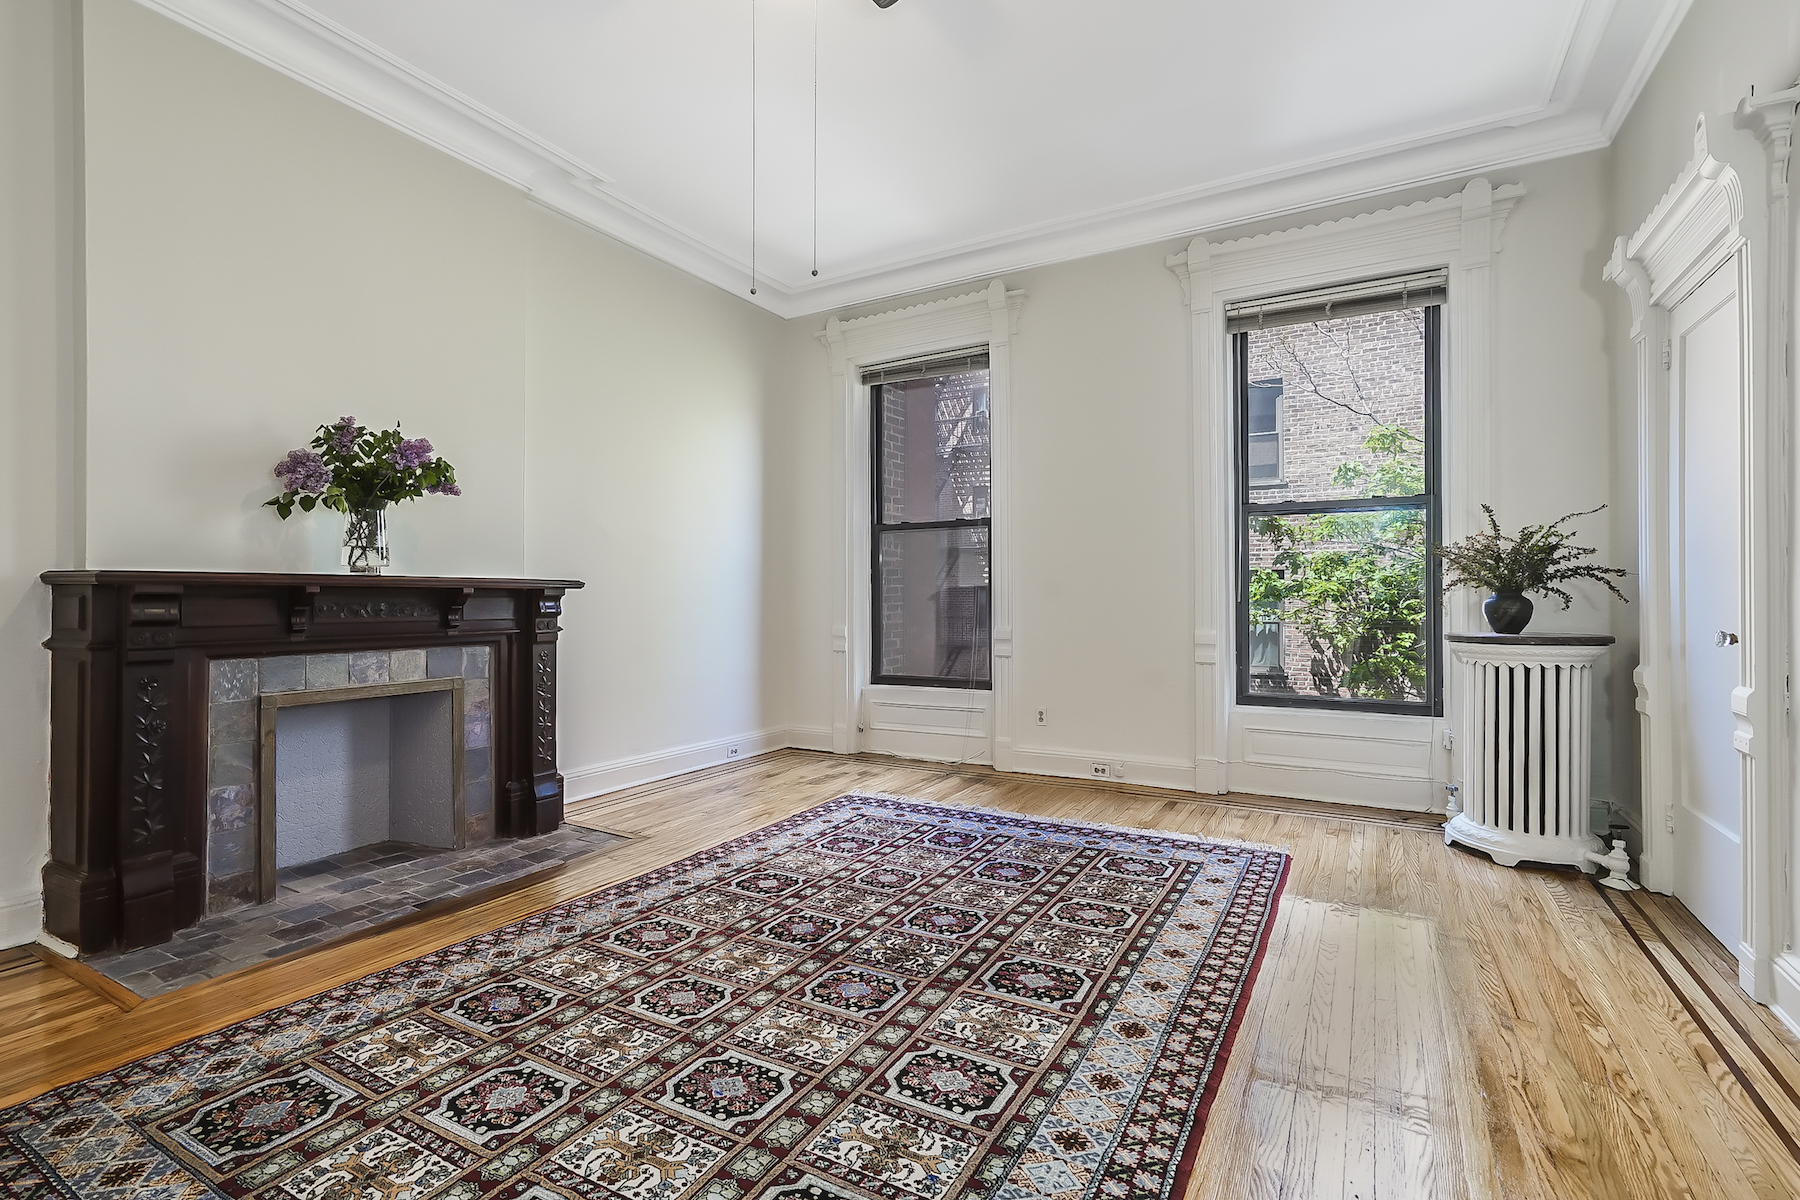 Additional photo for property listing at Beautiful One bedroom Co-op in Brownstone 20 8th Avenue Apt. 2-B Brooklyn, New York 11217 United States